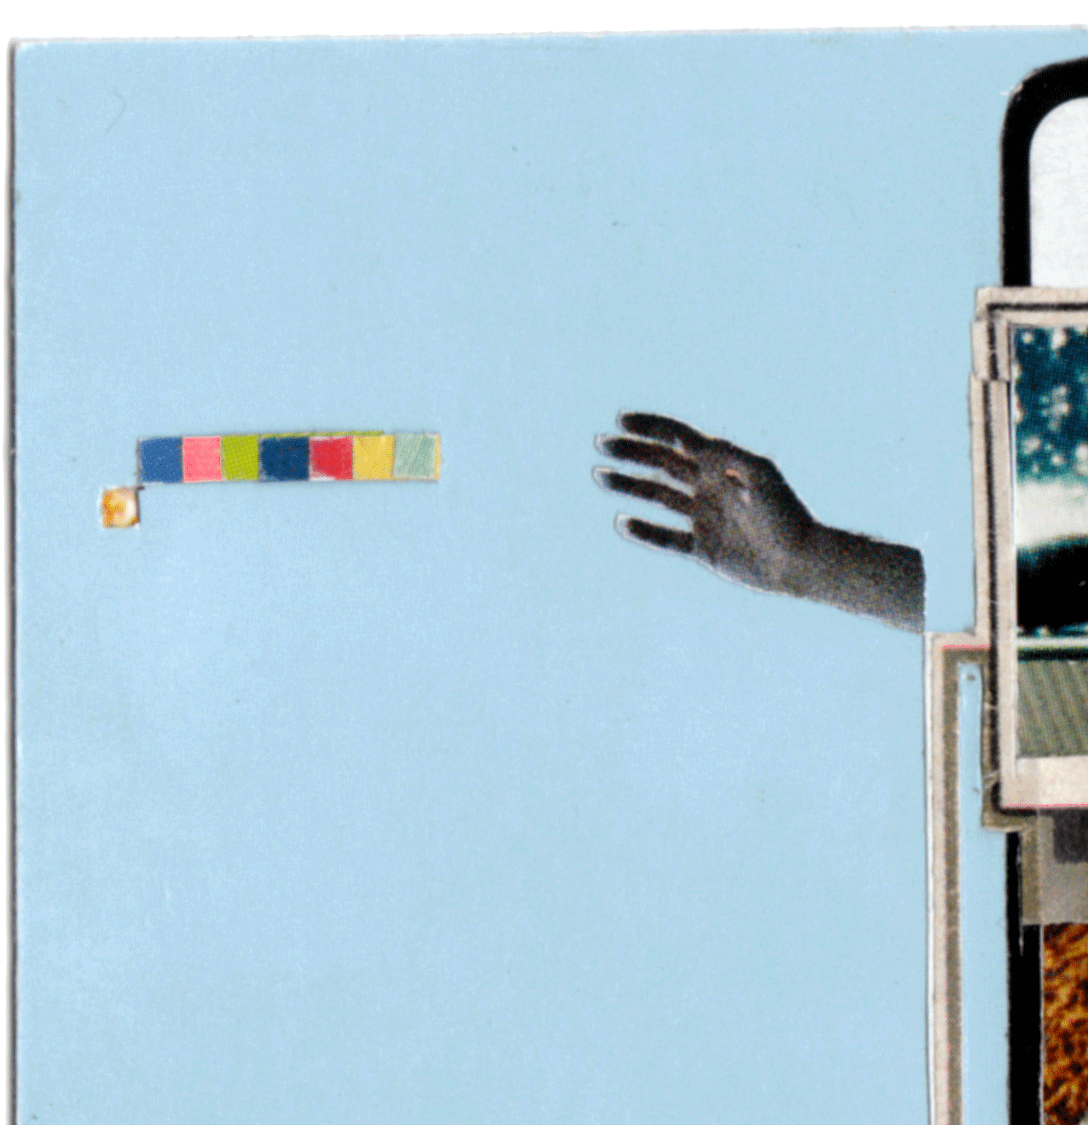 the touch  magazines, glue stick, rubber cement, fluorescent paper   detail   2008